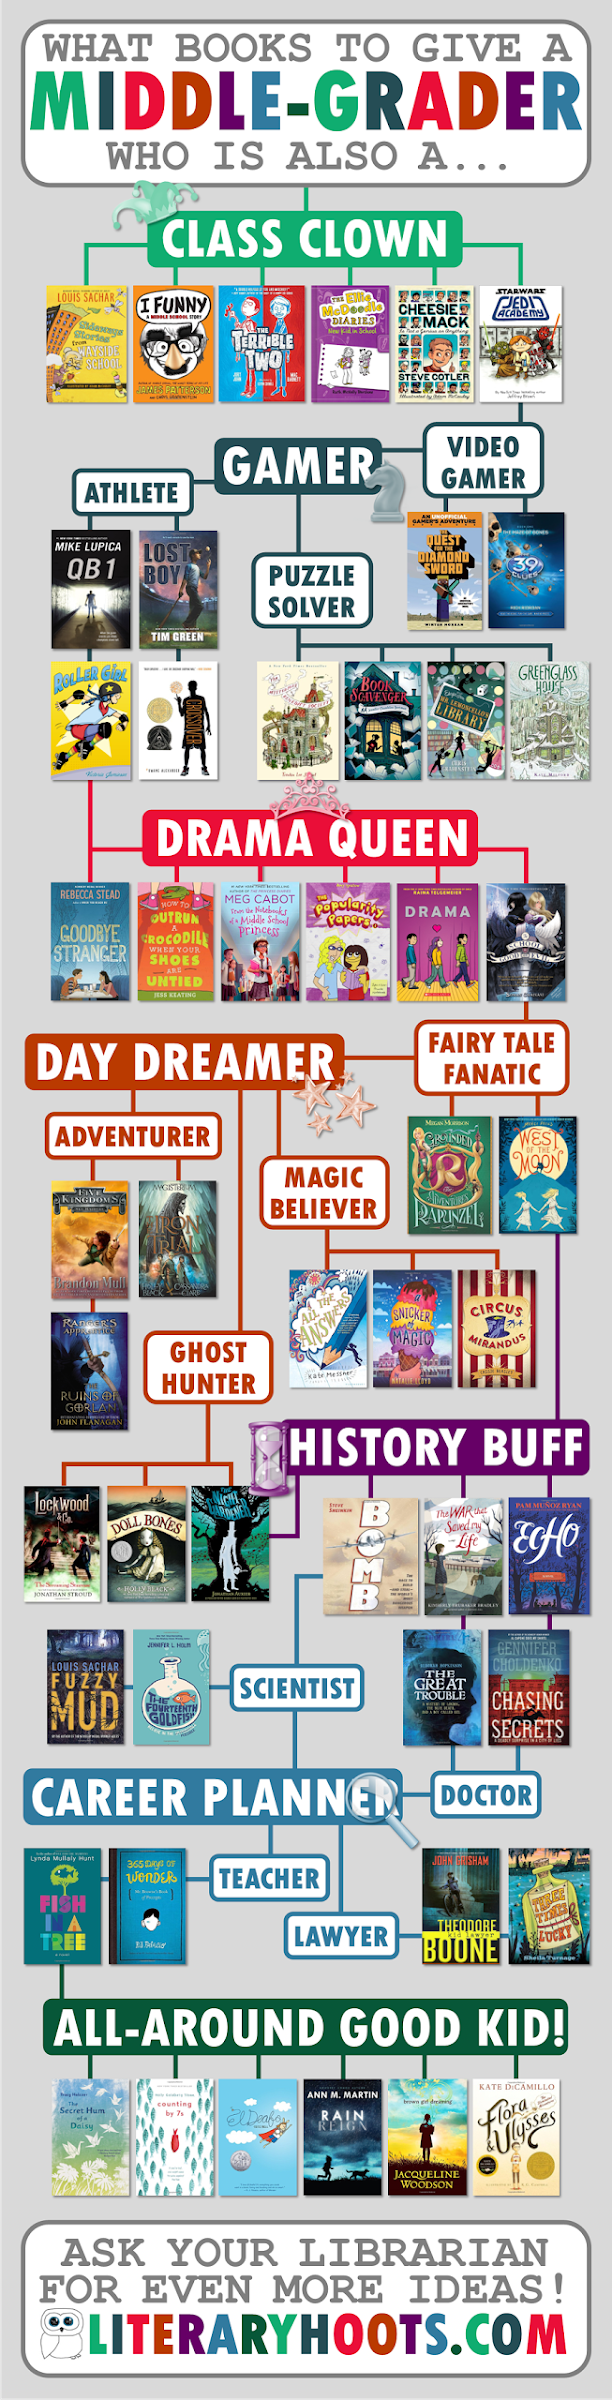 Literary Hoots  Flowchart  What Books To Give A Middle